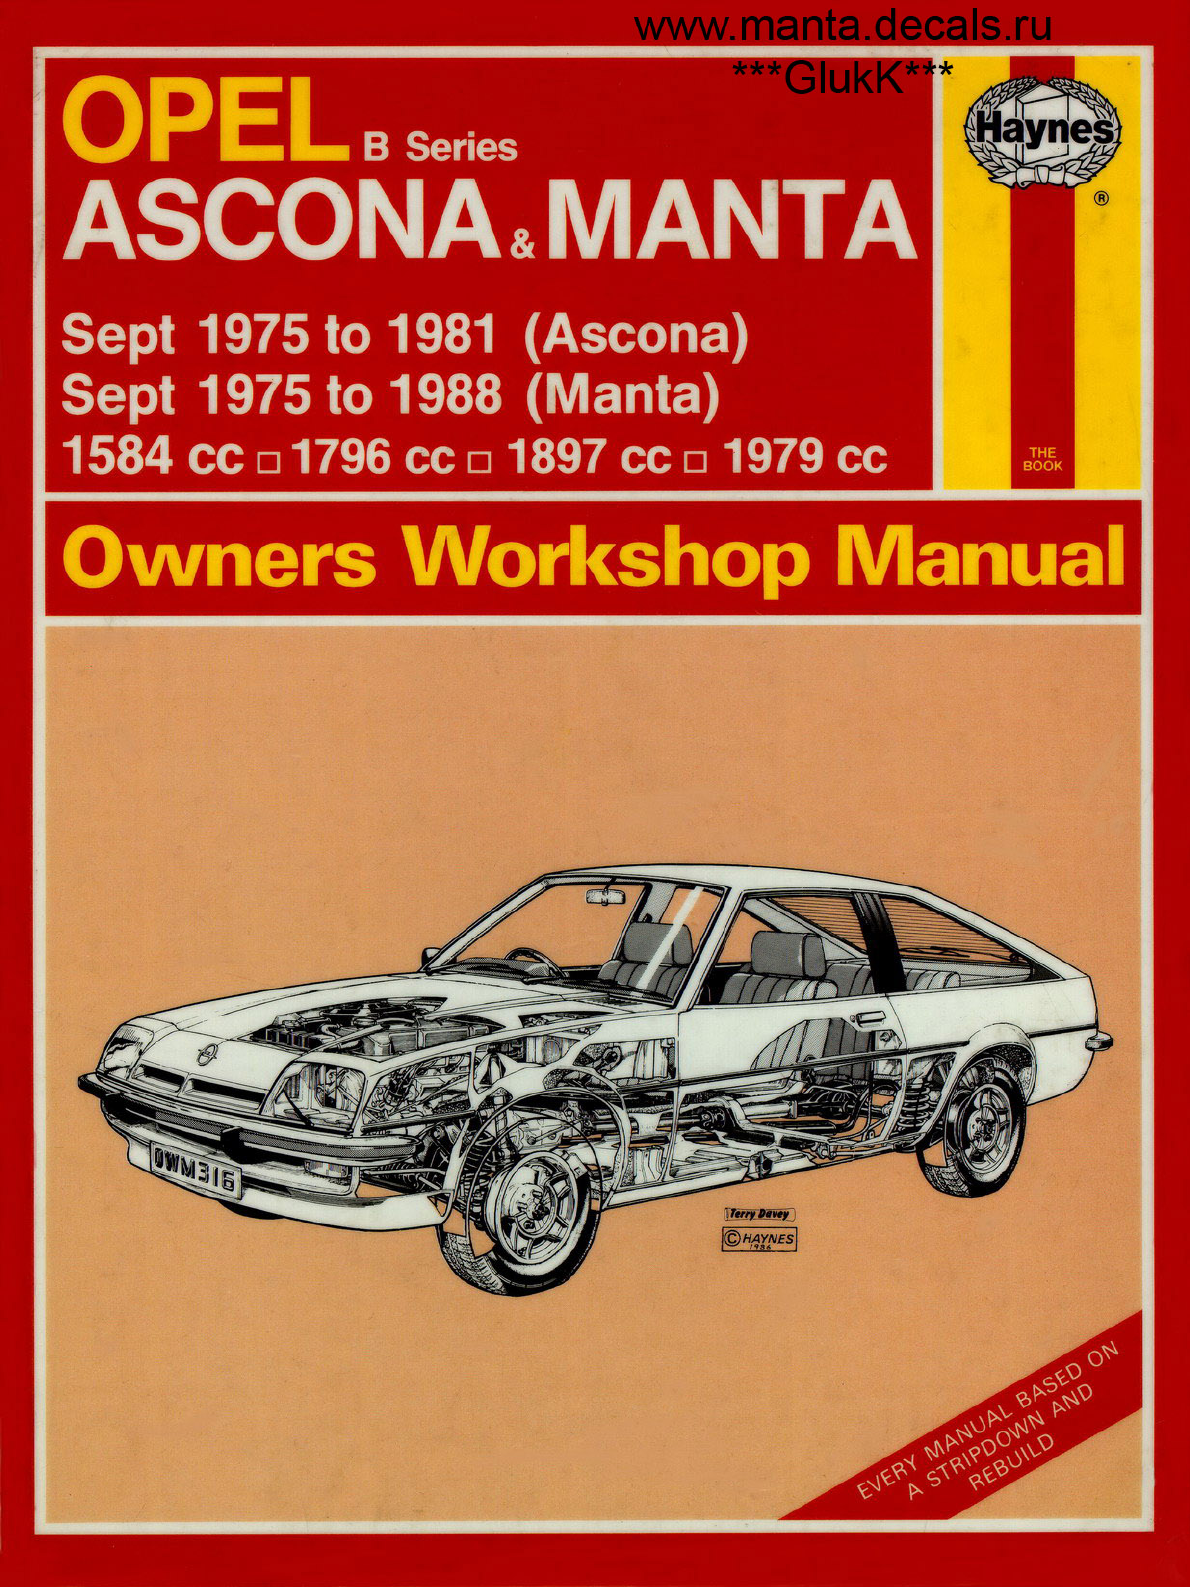 workshop manual opel ascona how to and user guide instructions u2022 rh taxibermuda co Opel Manta 1965 Opel Kadett